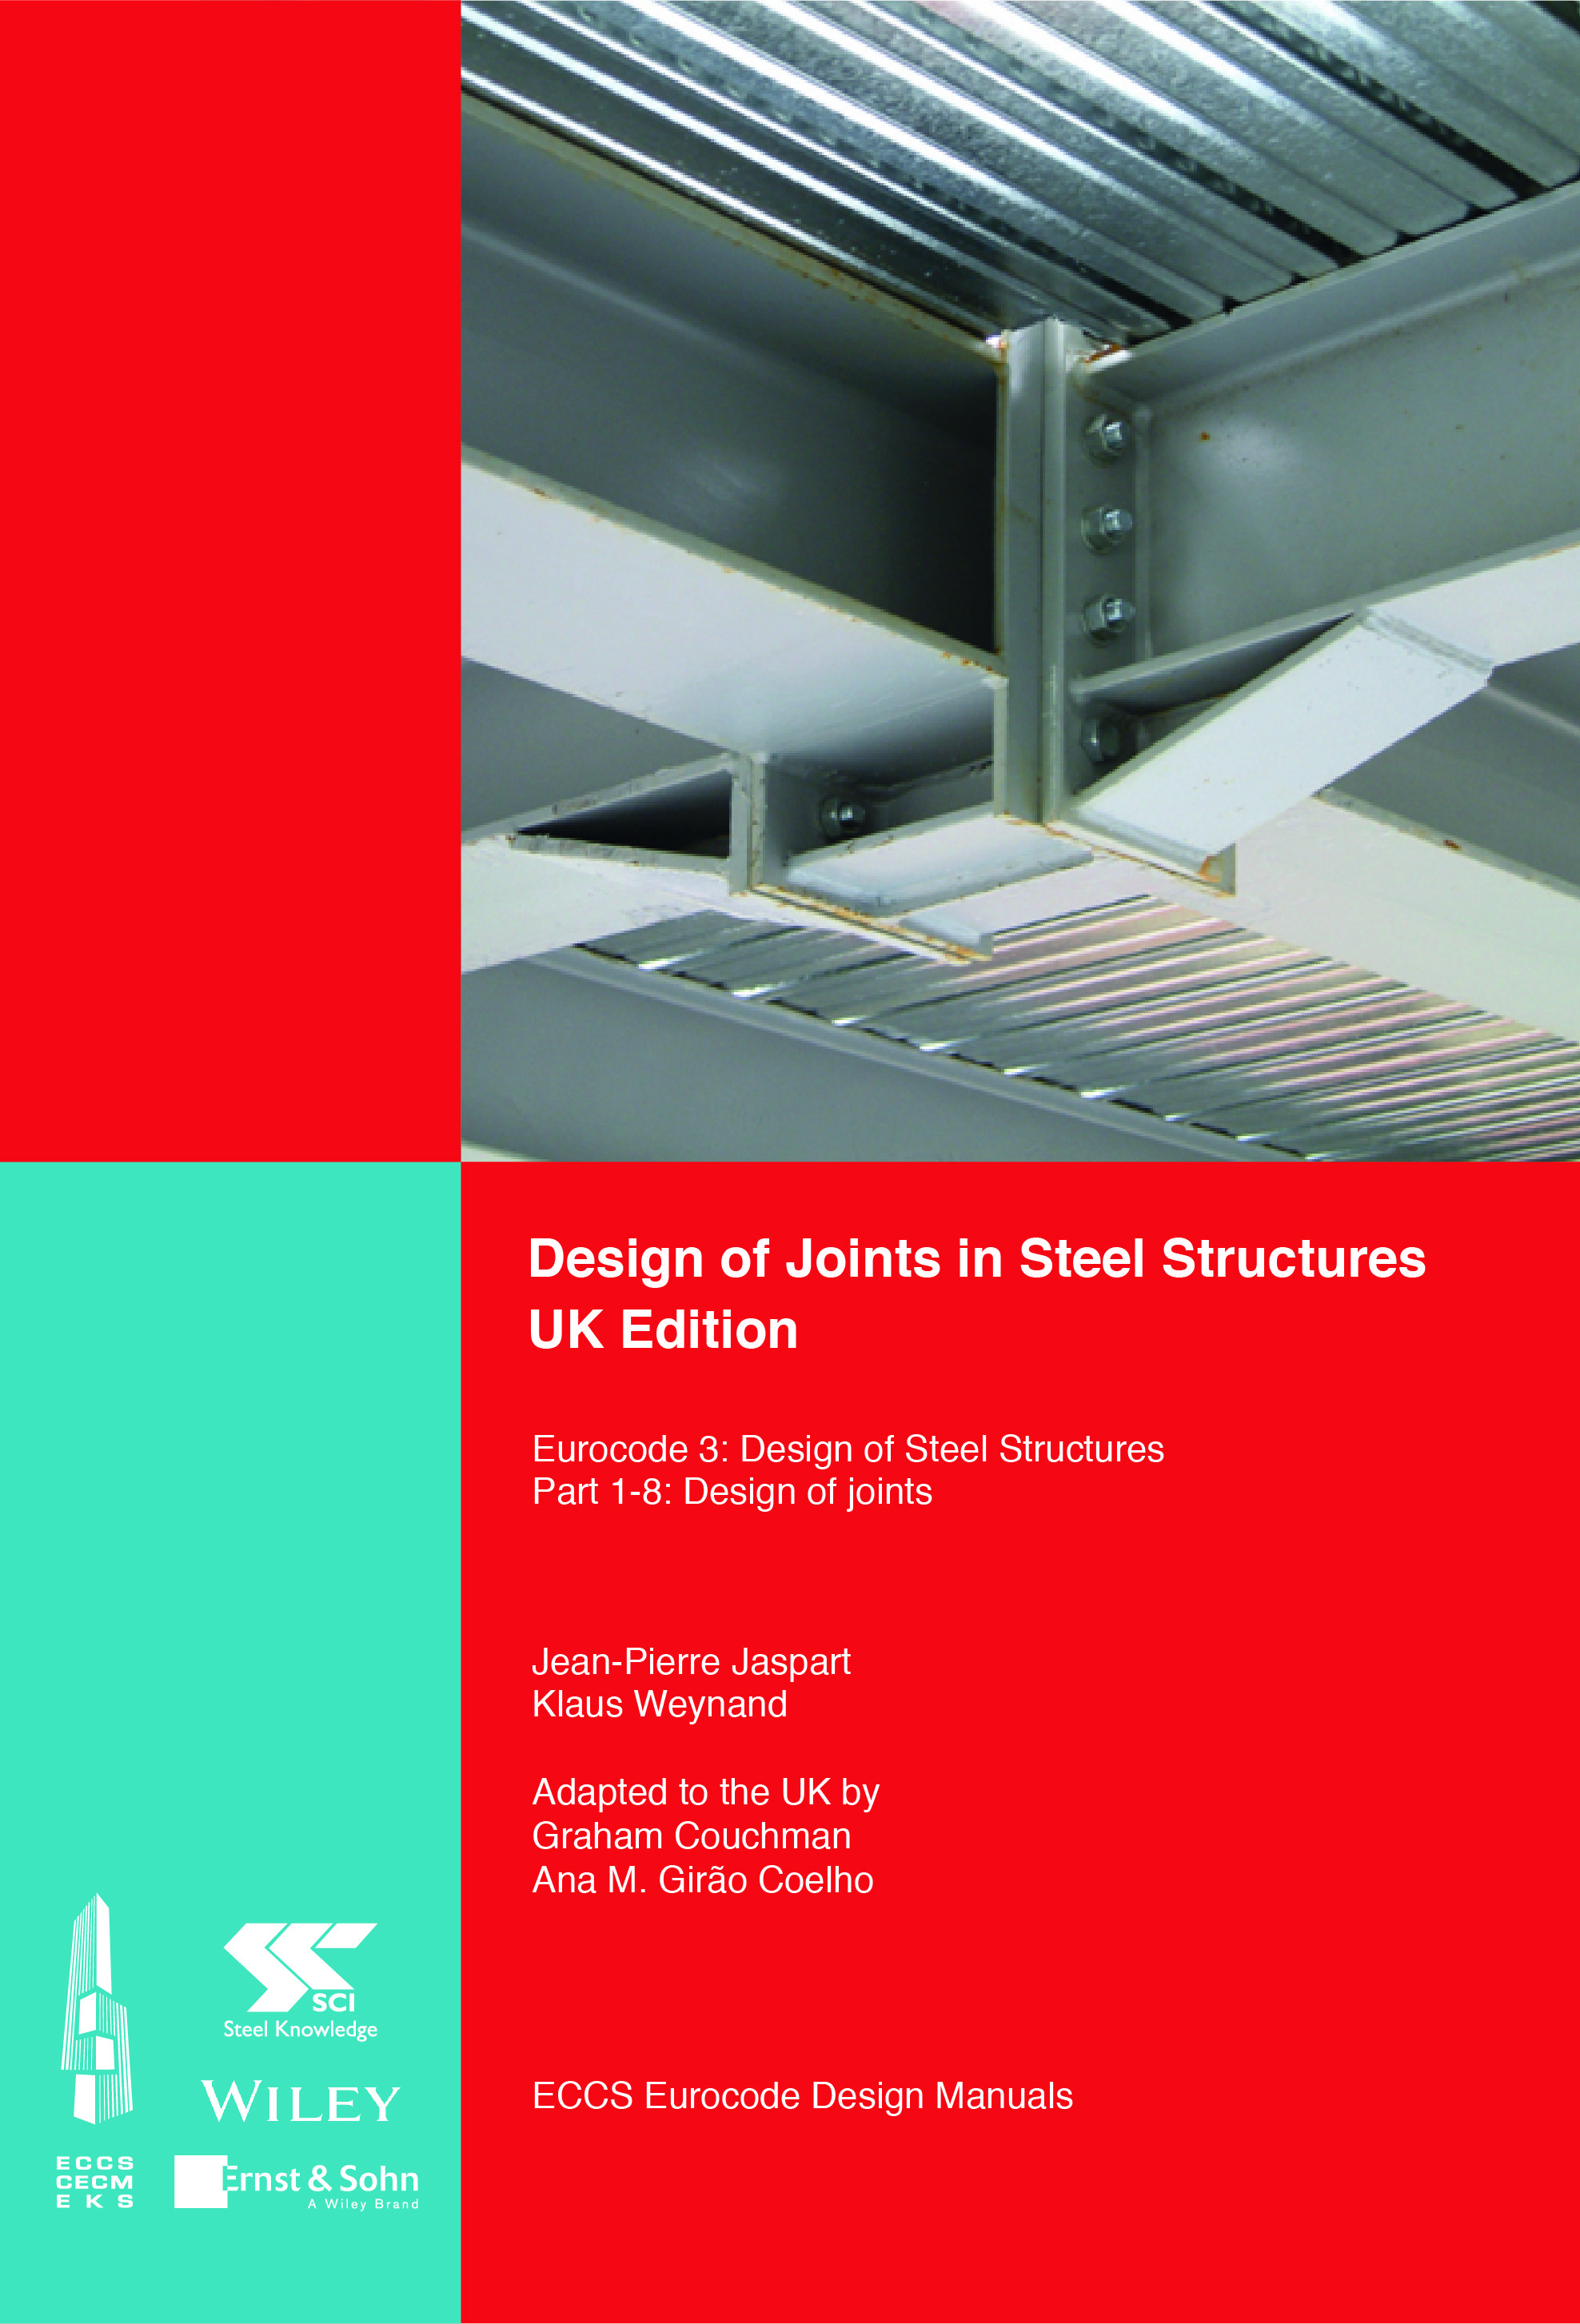 9783433032169_frontcover_u1:joints in Steel-UK edition